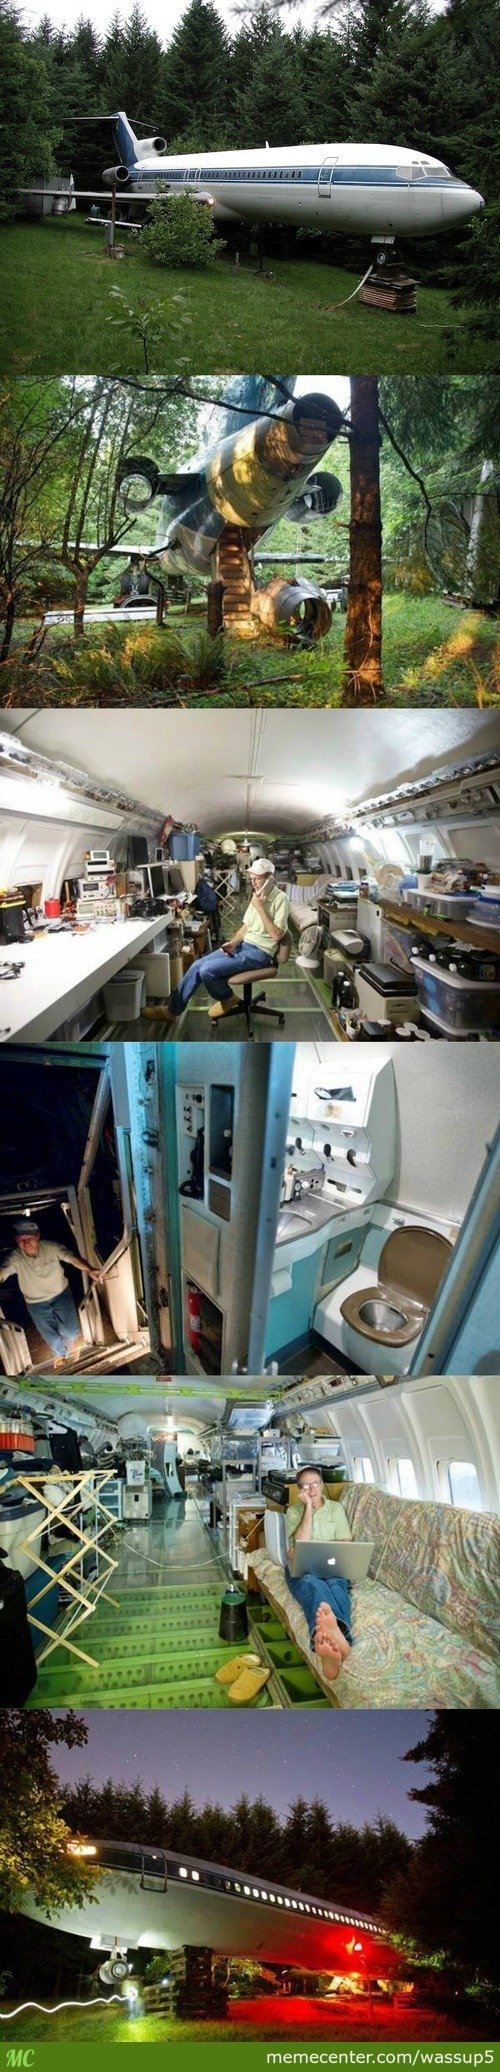 This Man Lives In An Airplane. The Most Amazing Is Inside!